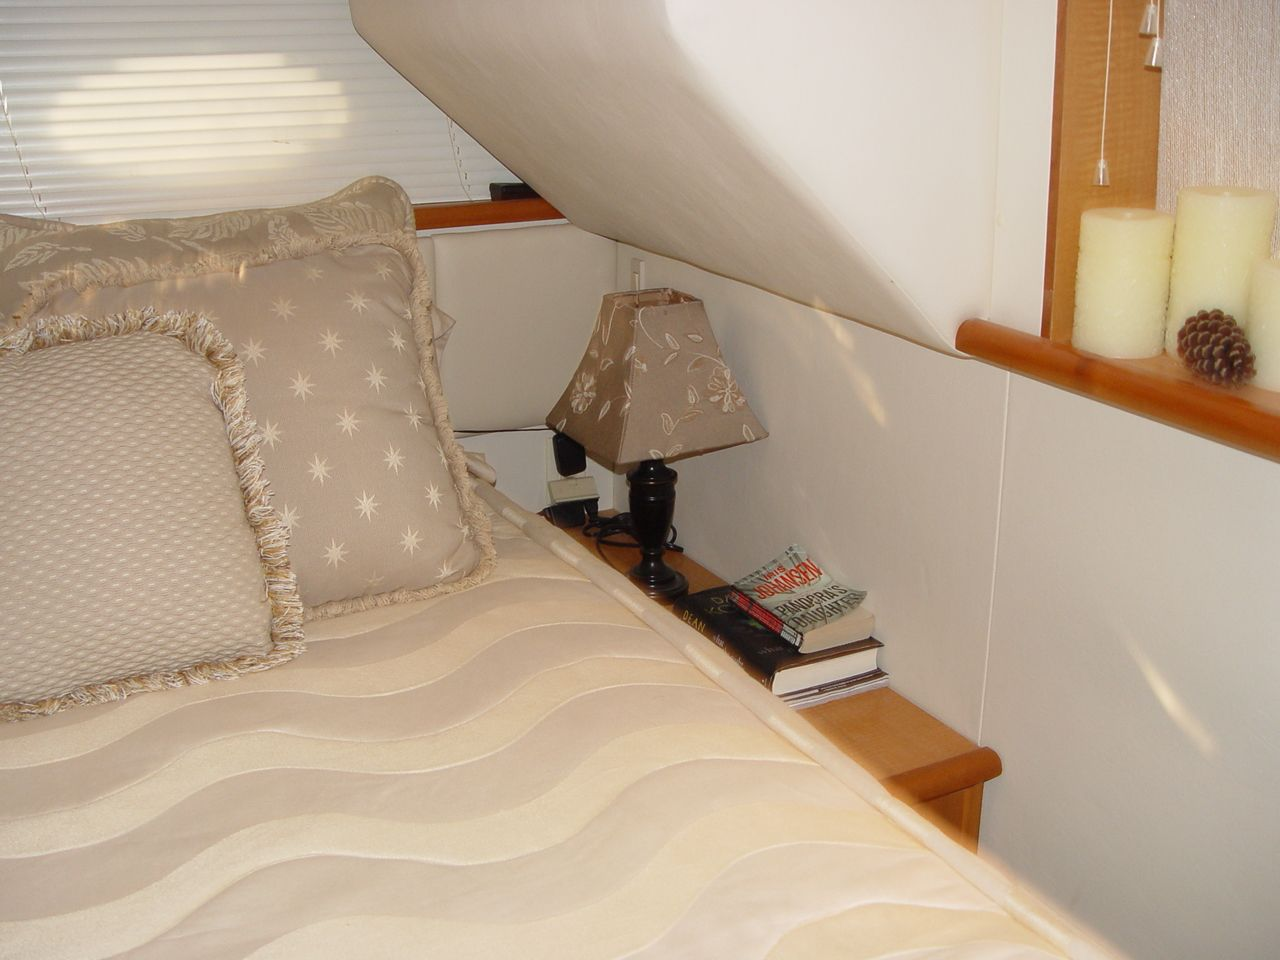 2nd Stateroom